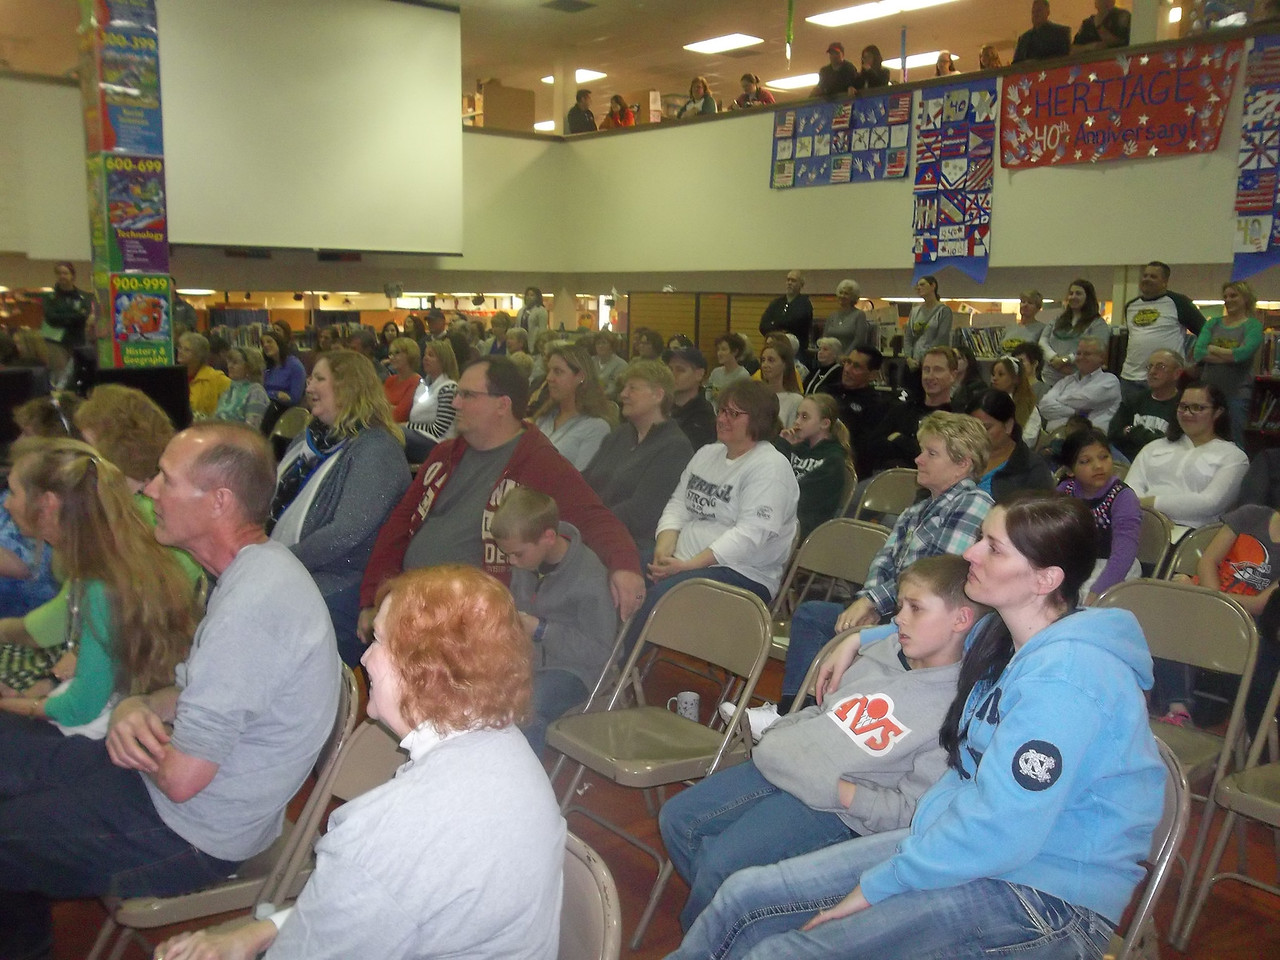 NIKKI RHOADES / GAZETTE Audience members listened Saturday as speakers celebrated the 40th anniversary of Medina's Heritage Elementary School talked about their experiences at the school.